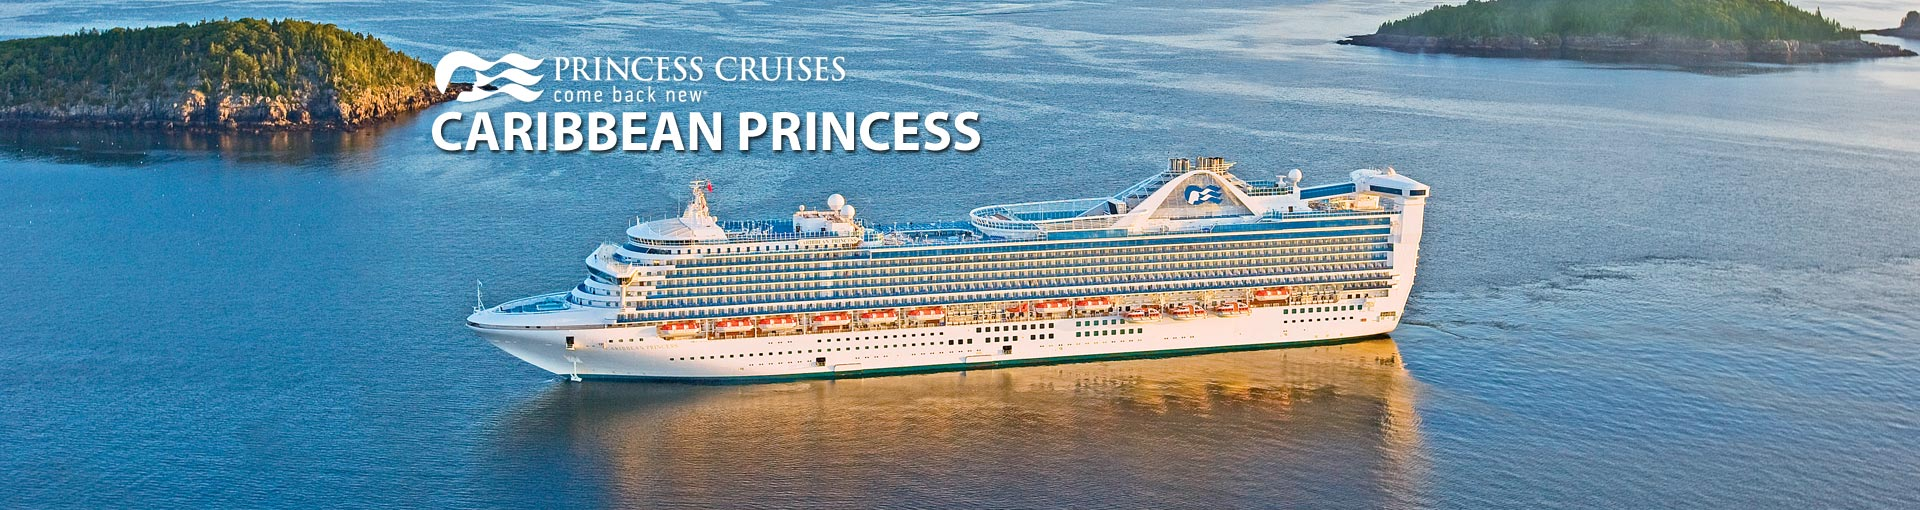 Princess Cruises Caribbean Princess cruise ship